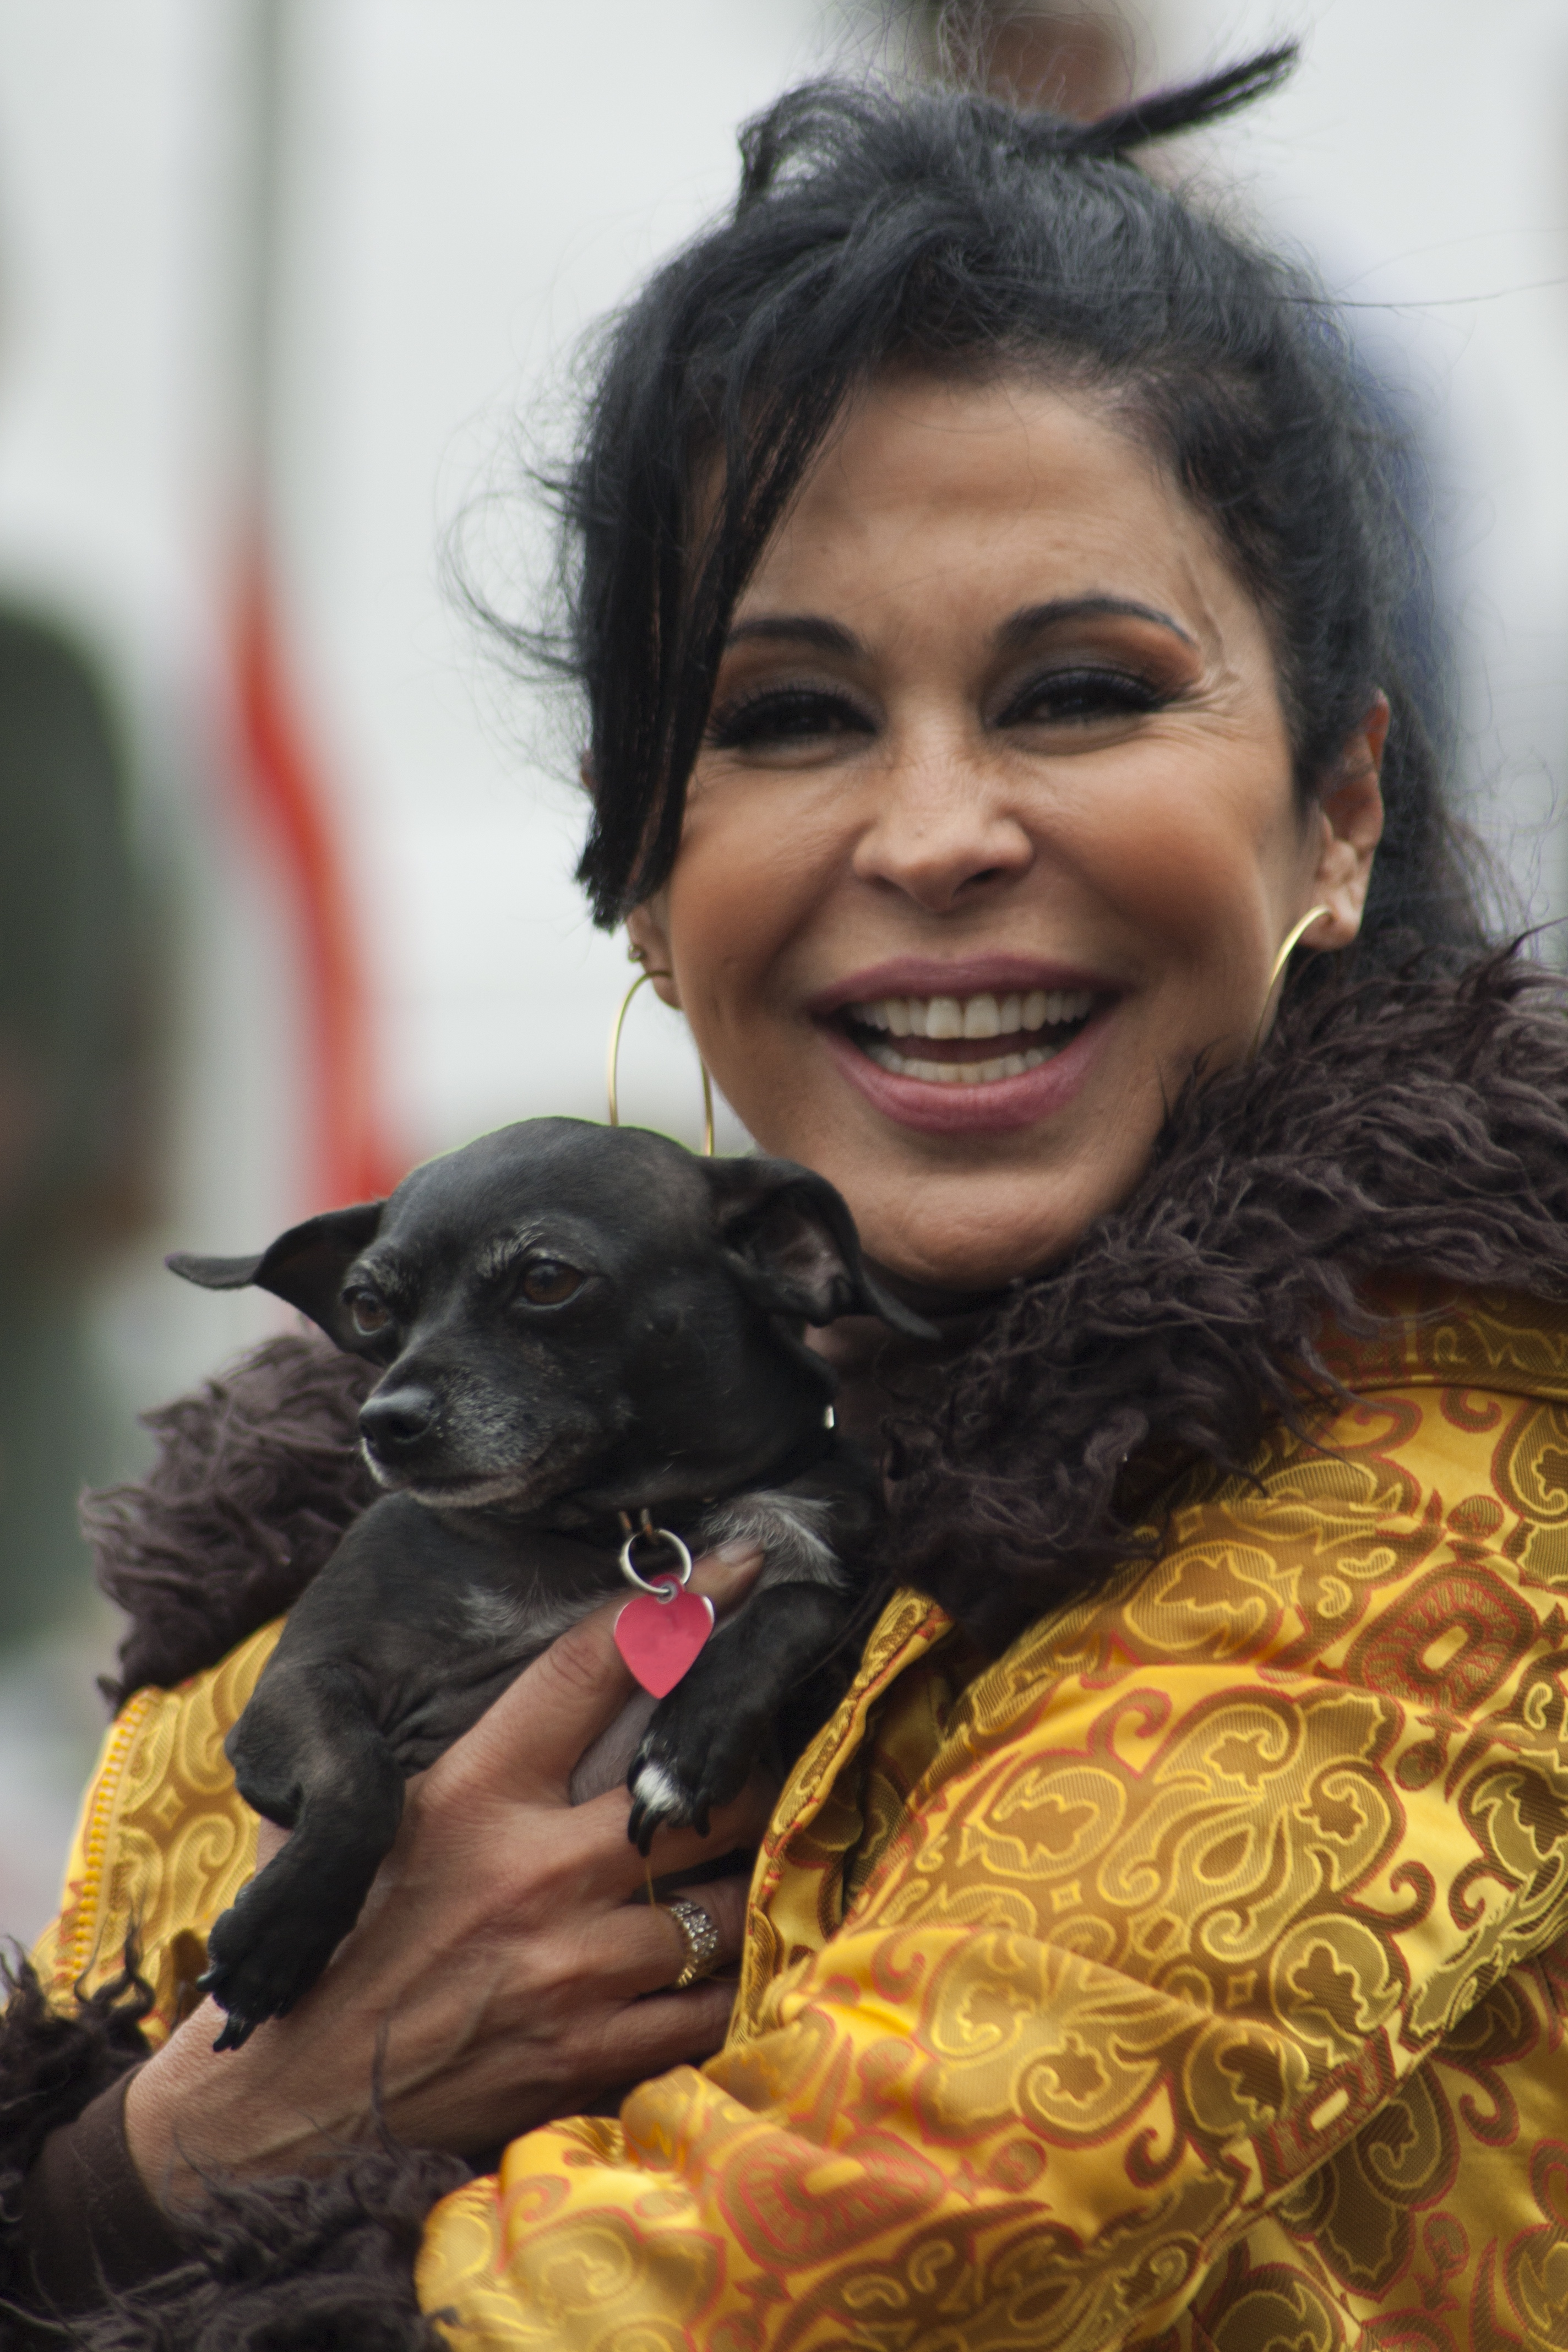 Description Maria Conchita Alonso LA Pride 2011.jpg